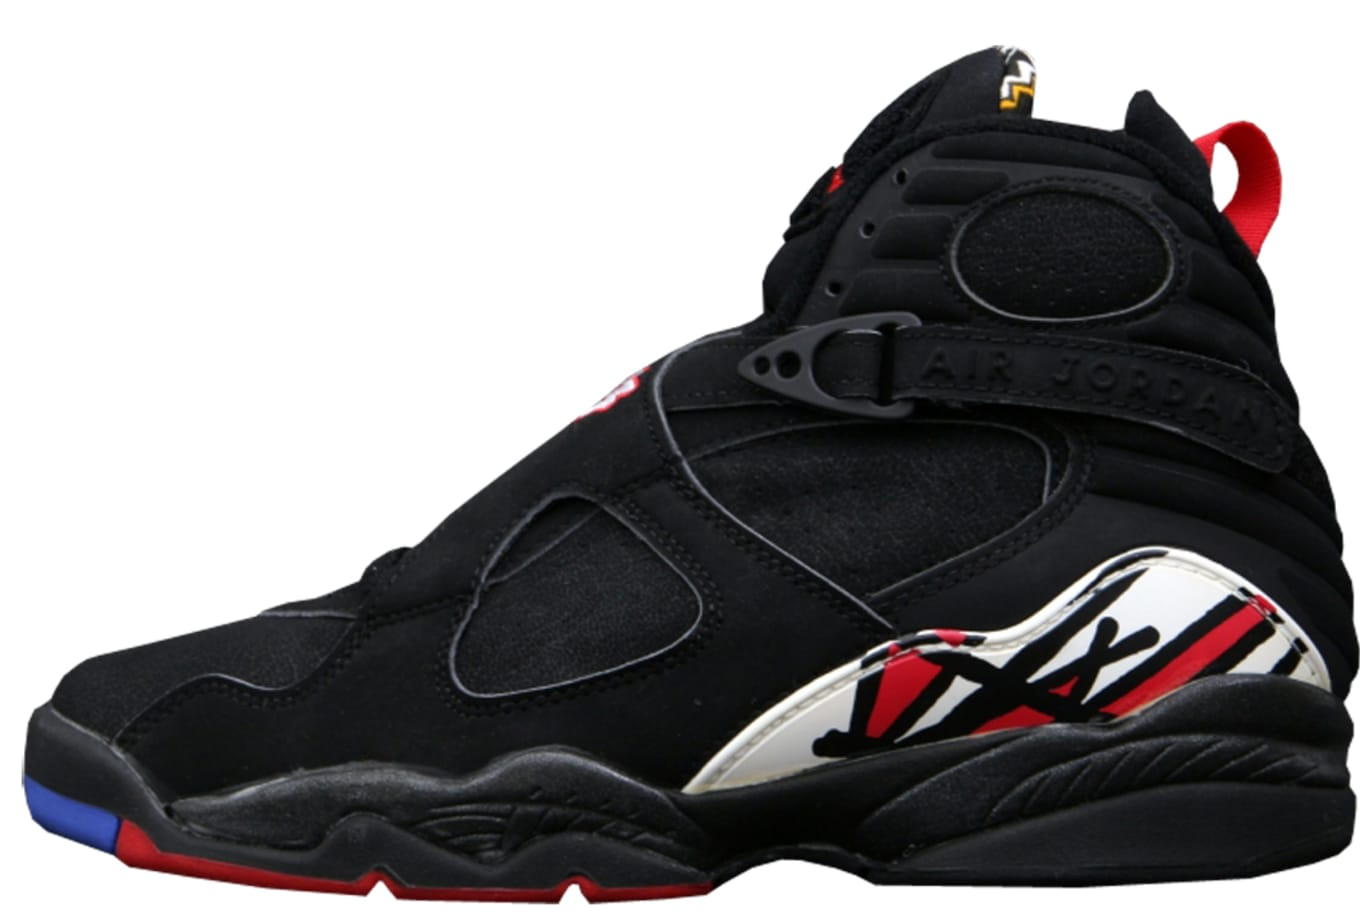 wholesale dealer e52e0 54ad7 Air Jordan 8 : The Definitive Guide to Colorways | Sole ...